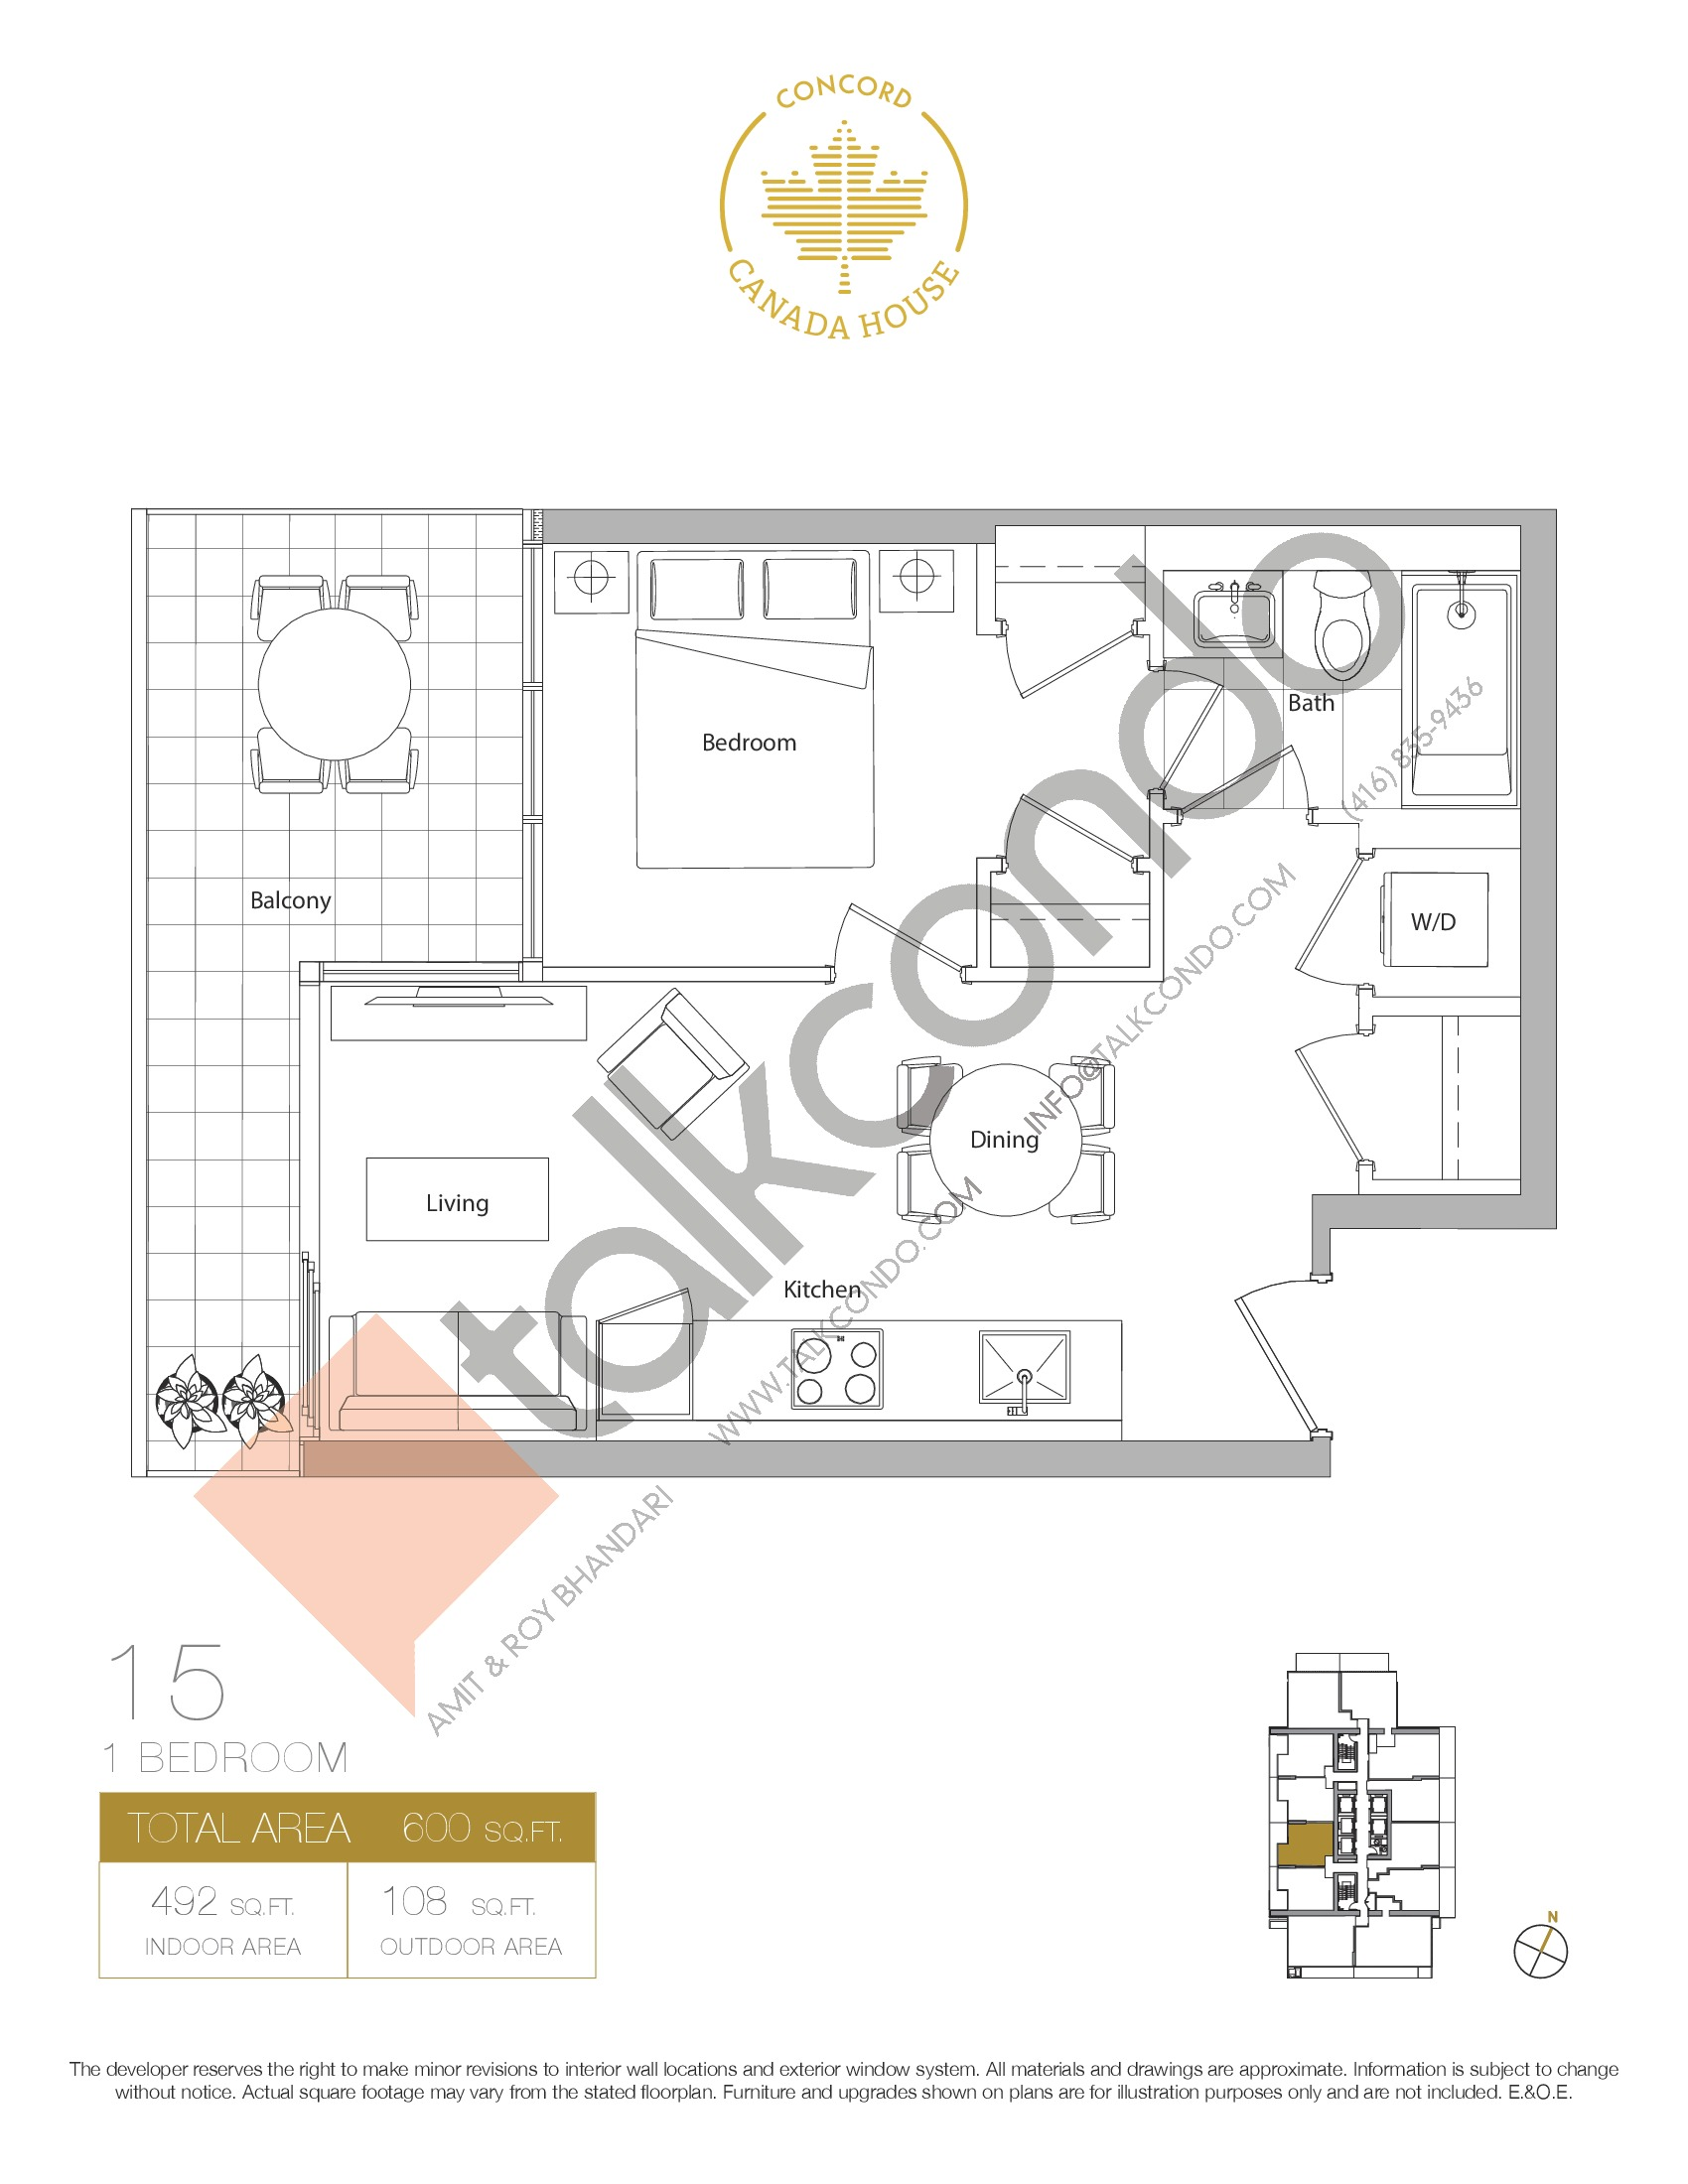 15 - West Tower Floor Plan at Concord Canada House Condos - 492 sq.ft